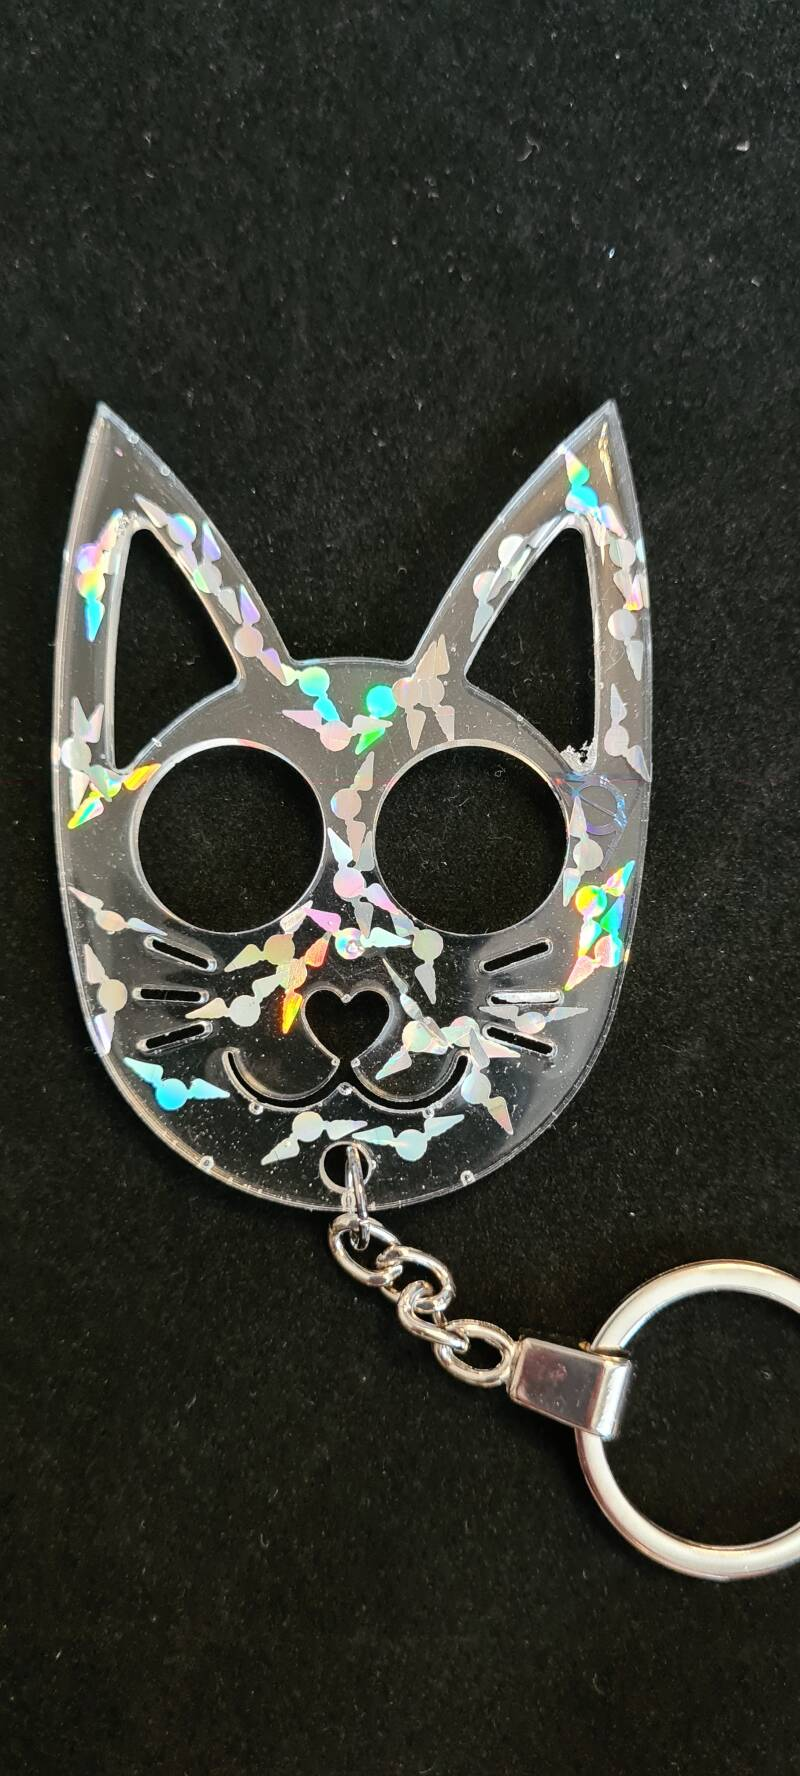 Kittycat Keychain Snitch & Deadly Hallows Holographic